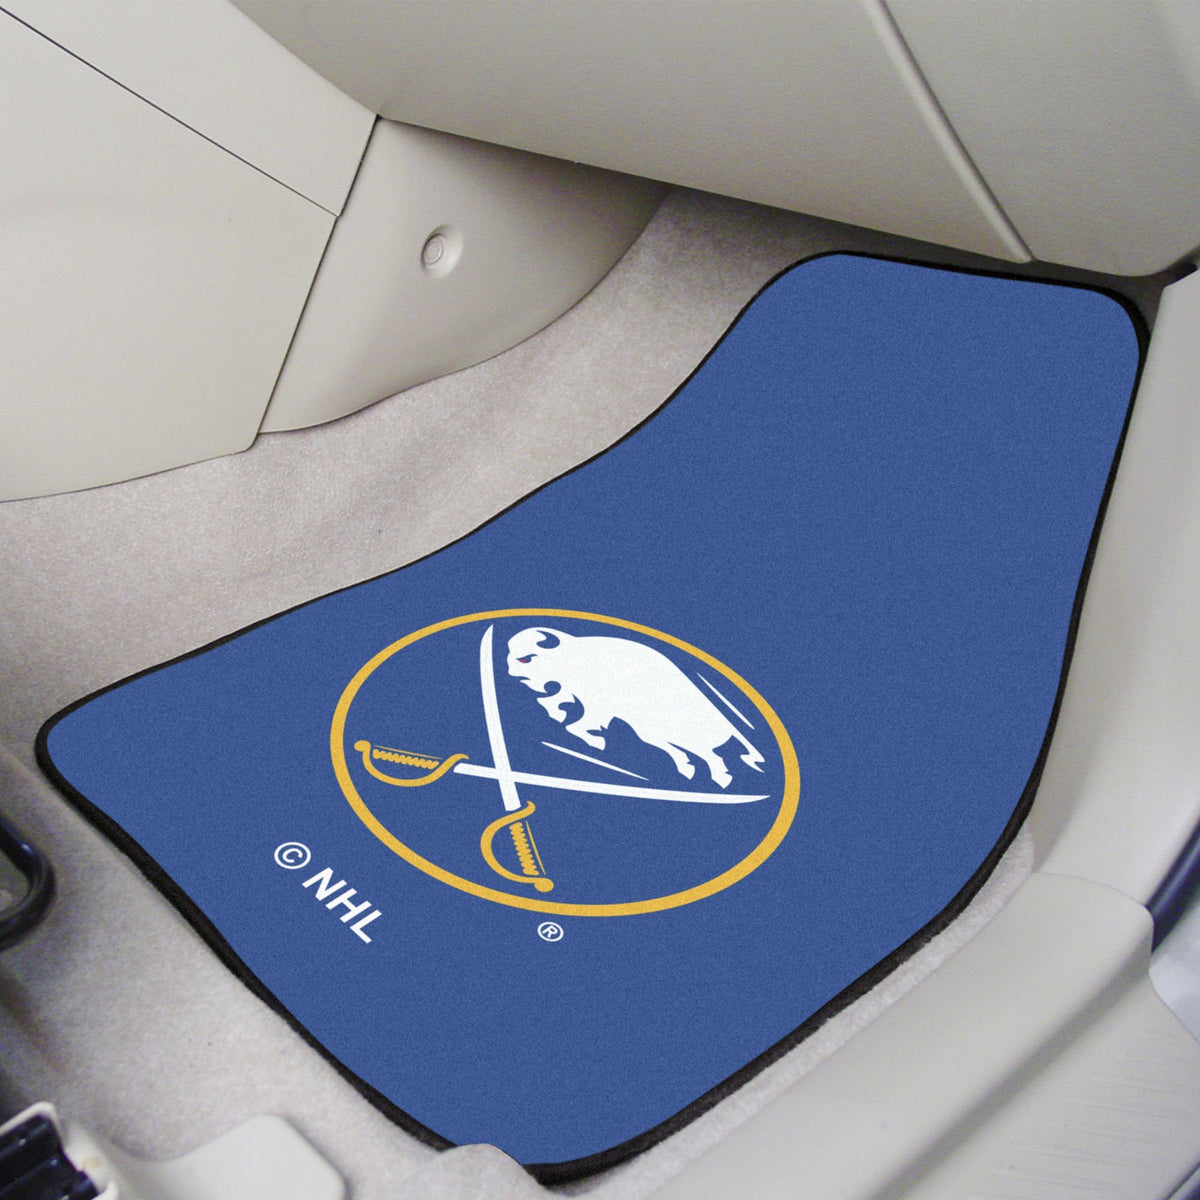 NHL - Carpet Car Mat, 2-Piece Set NHL Mats, Front Car Mats, 2-pc Carpet Car Mat Set, NHL, Auto Fan Mats Buffalo Sabres